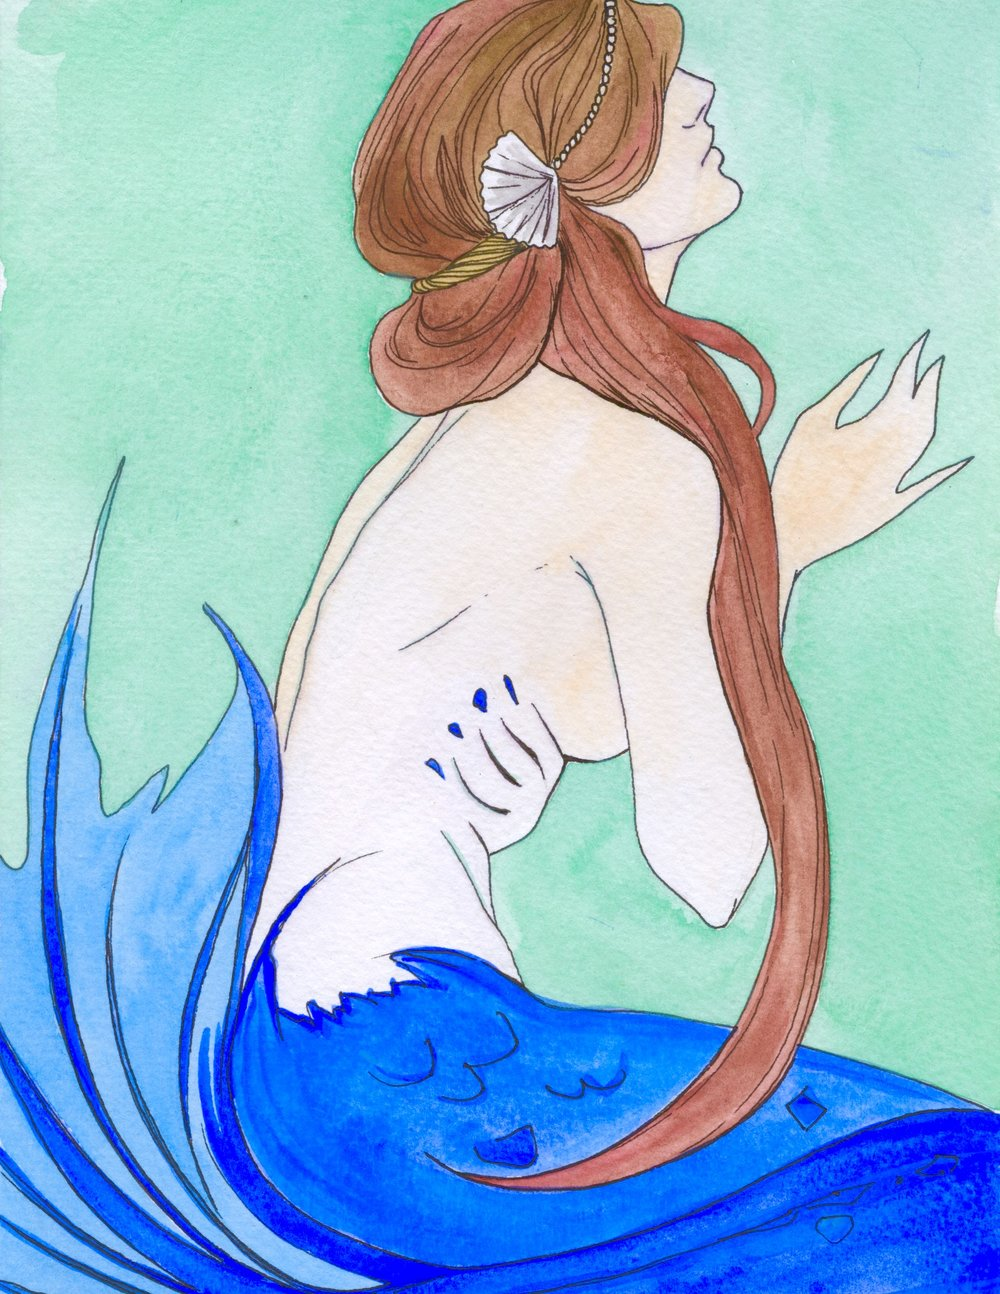 La Sirena, from LOTERIA series